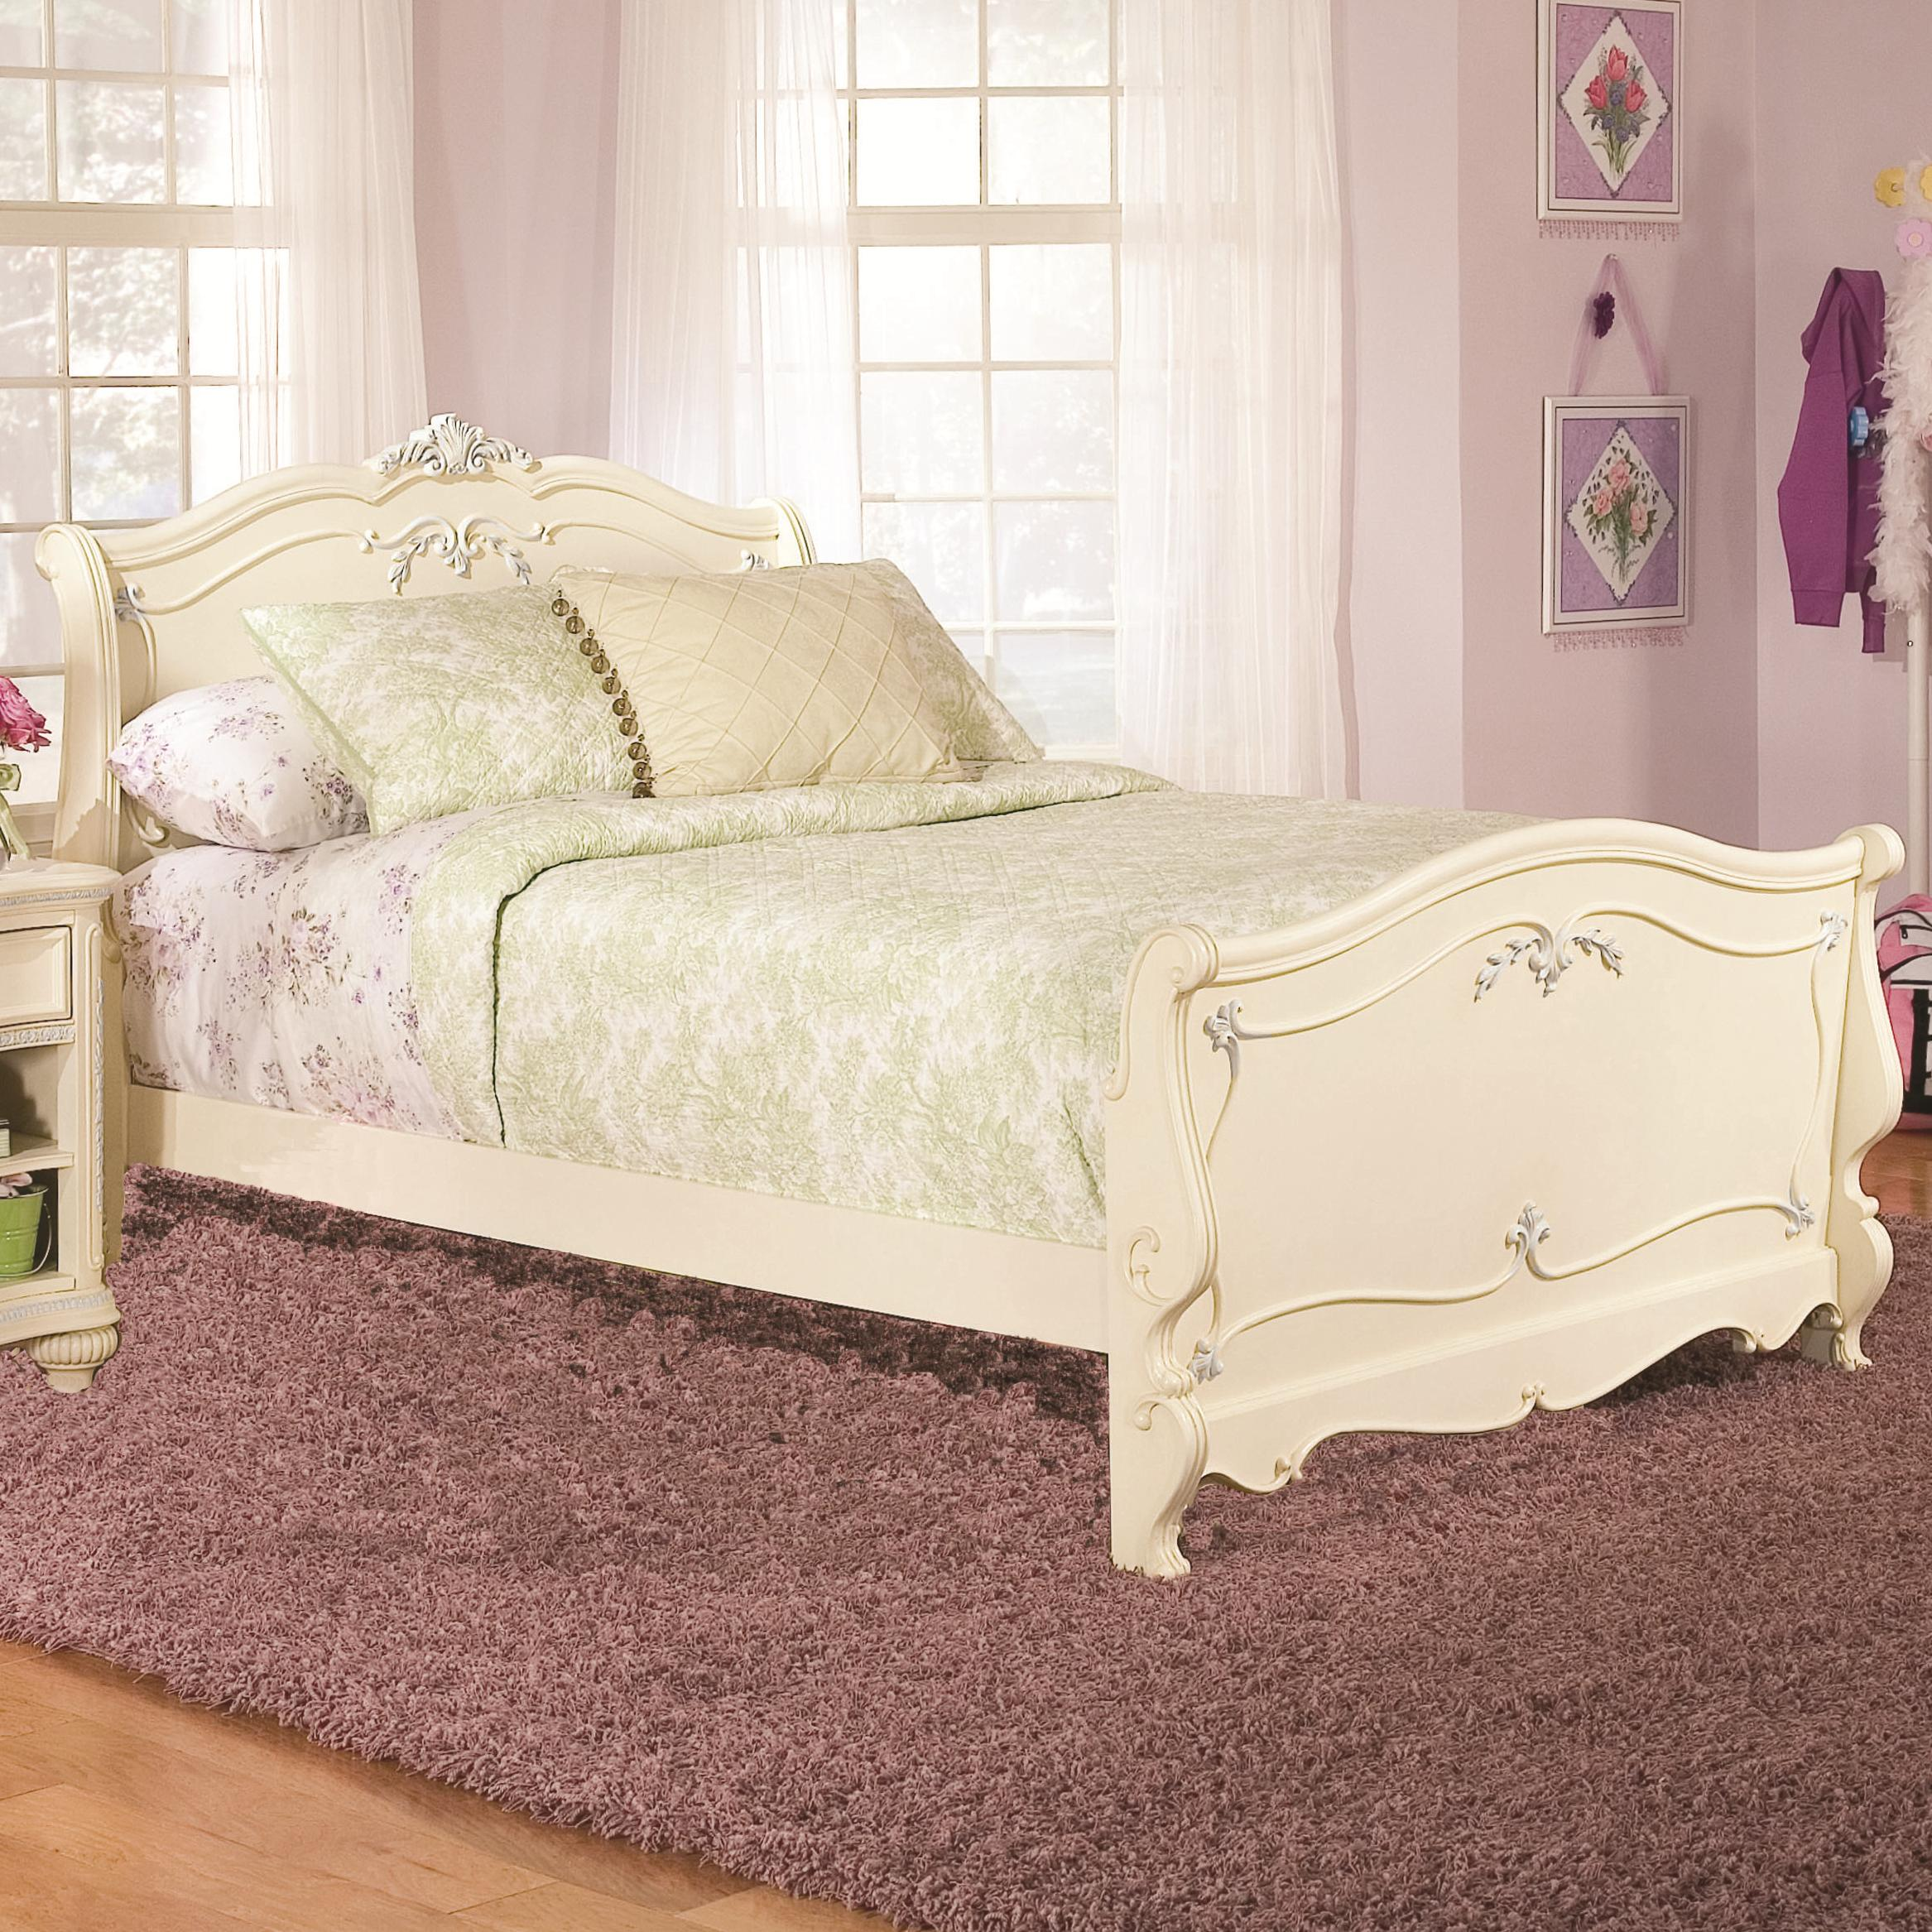 lea industries jessica mcclintock romance queen size traditional